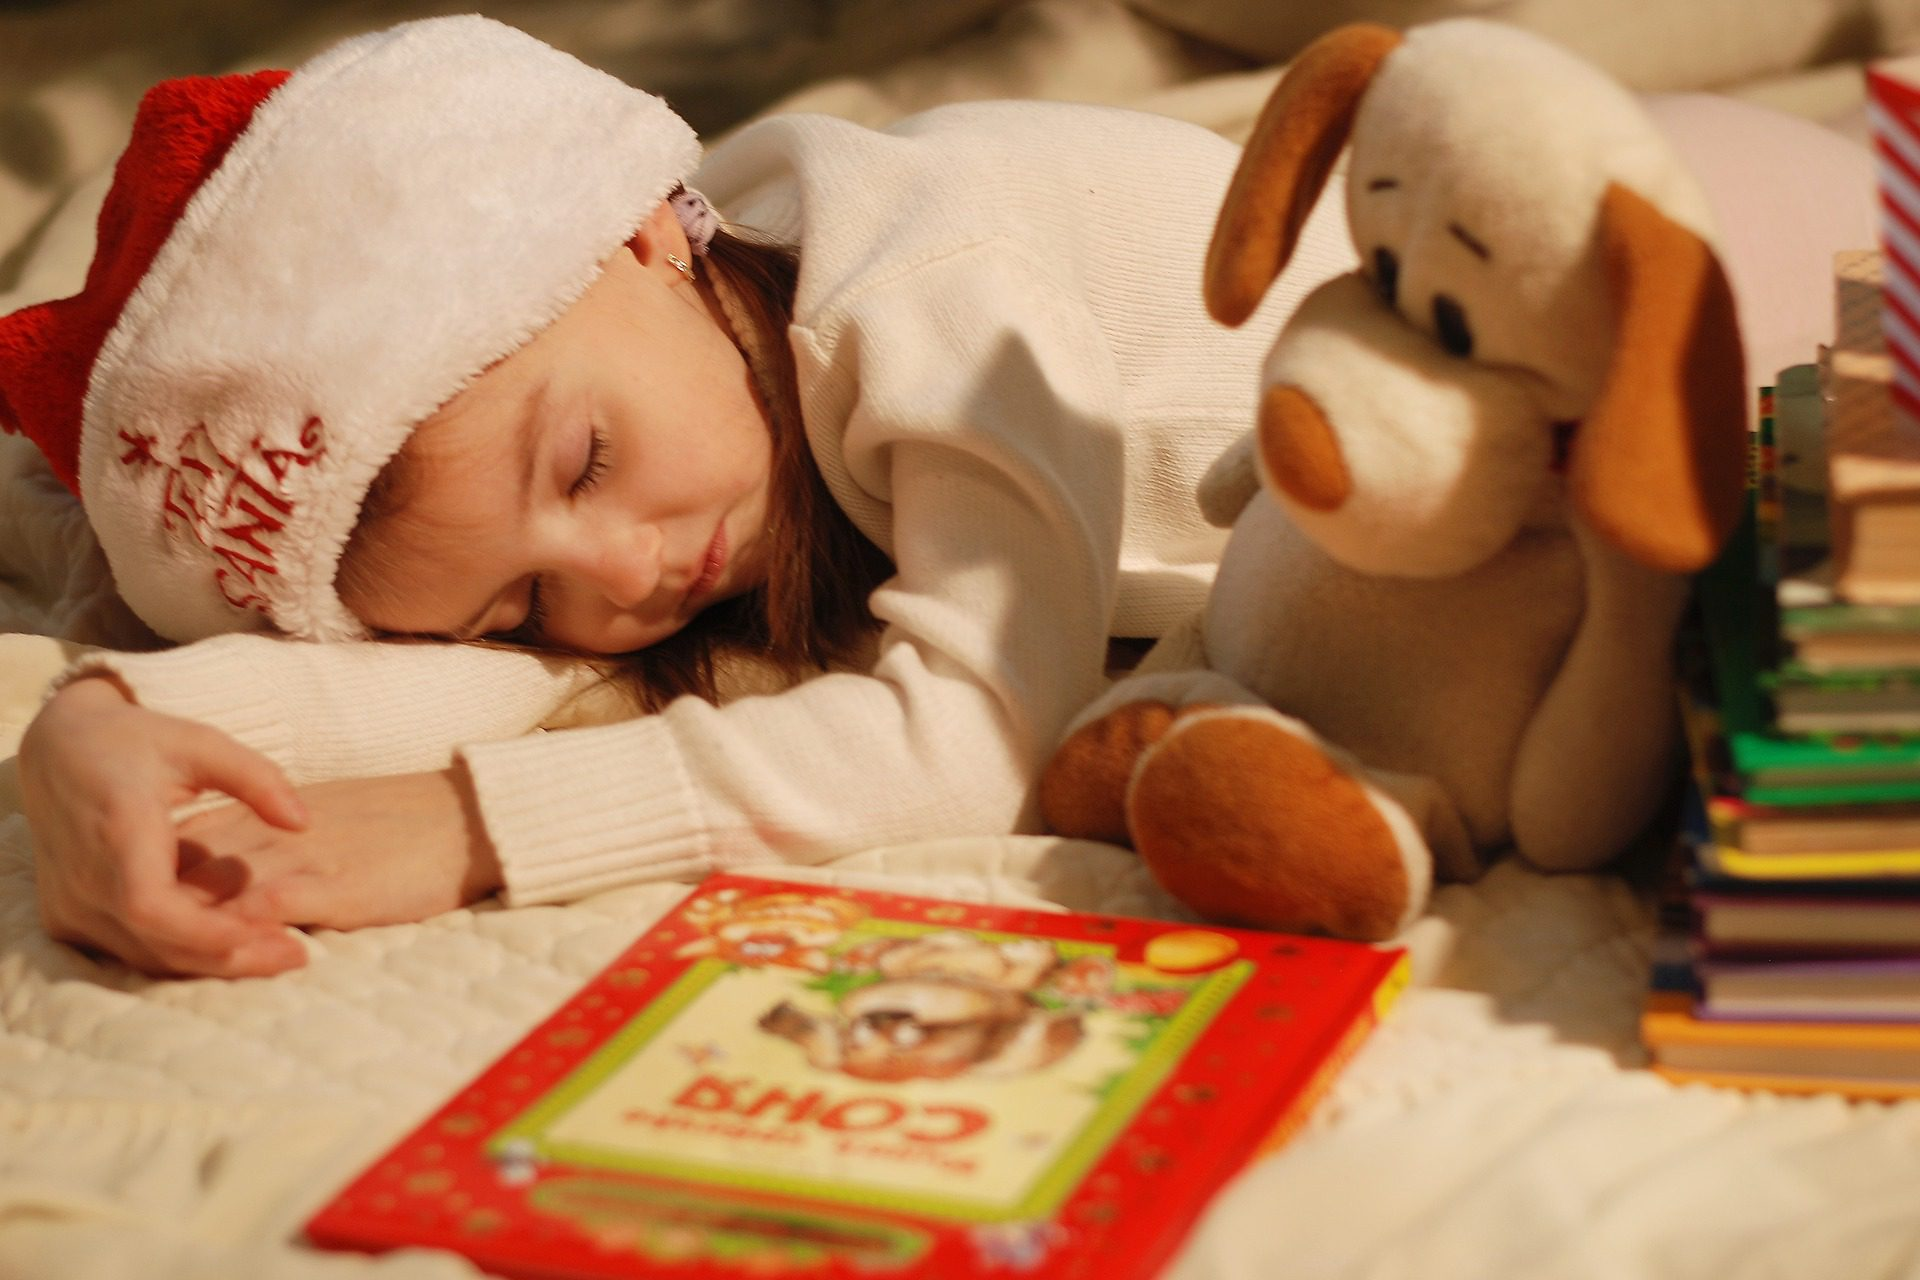 List Of 71 Best Christmas Books For Kids (Like How The Grinch Stole Christmas) 1